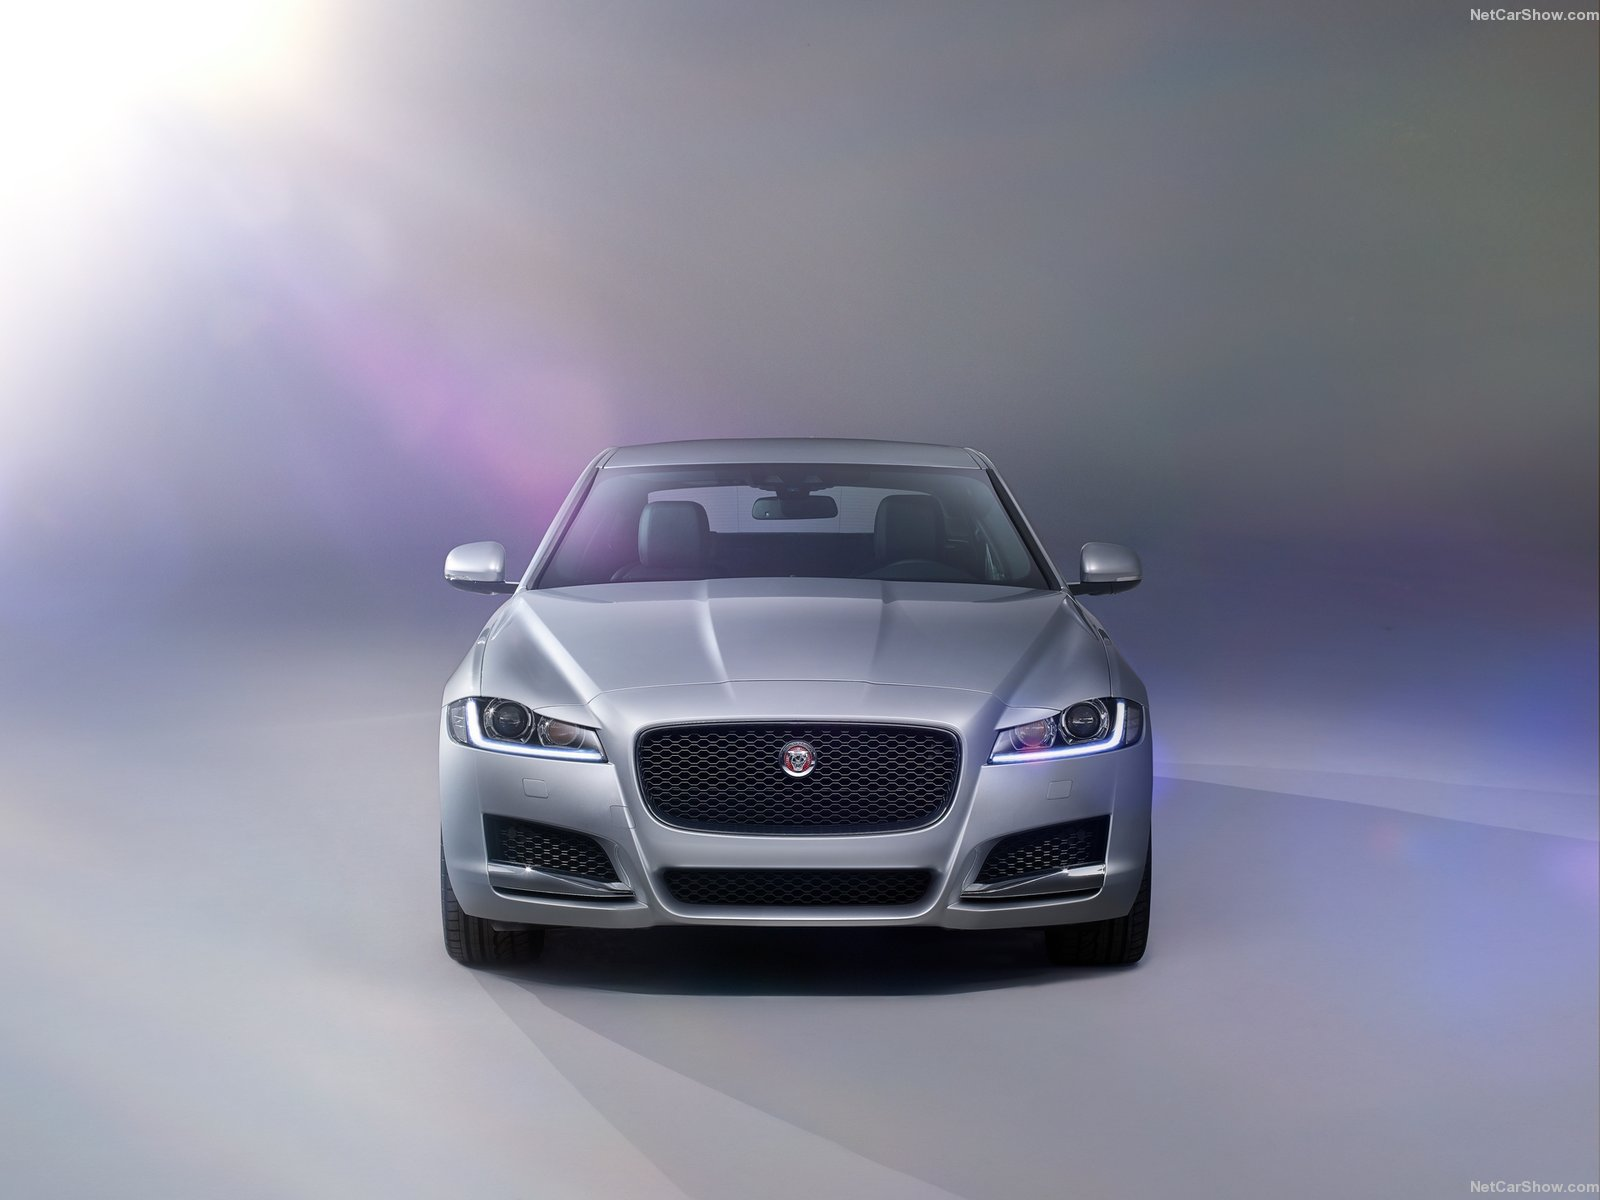 Jaguar-XF_2016_1600x1200_wallpaper_95.jpg